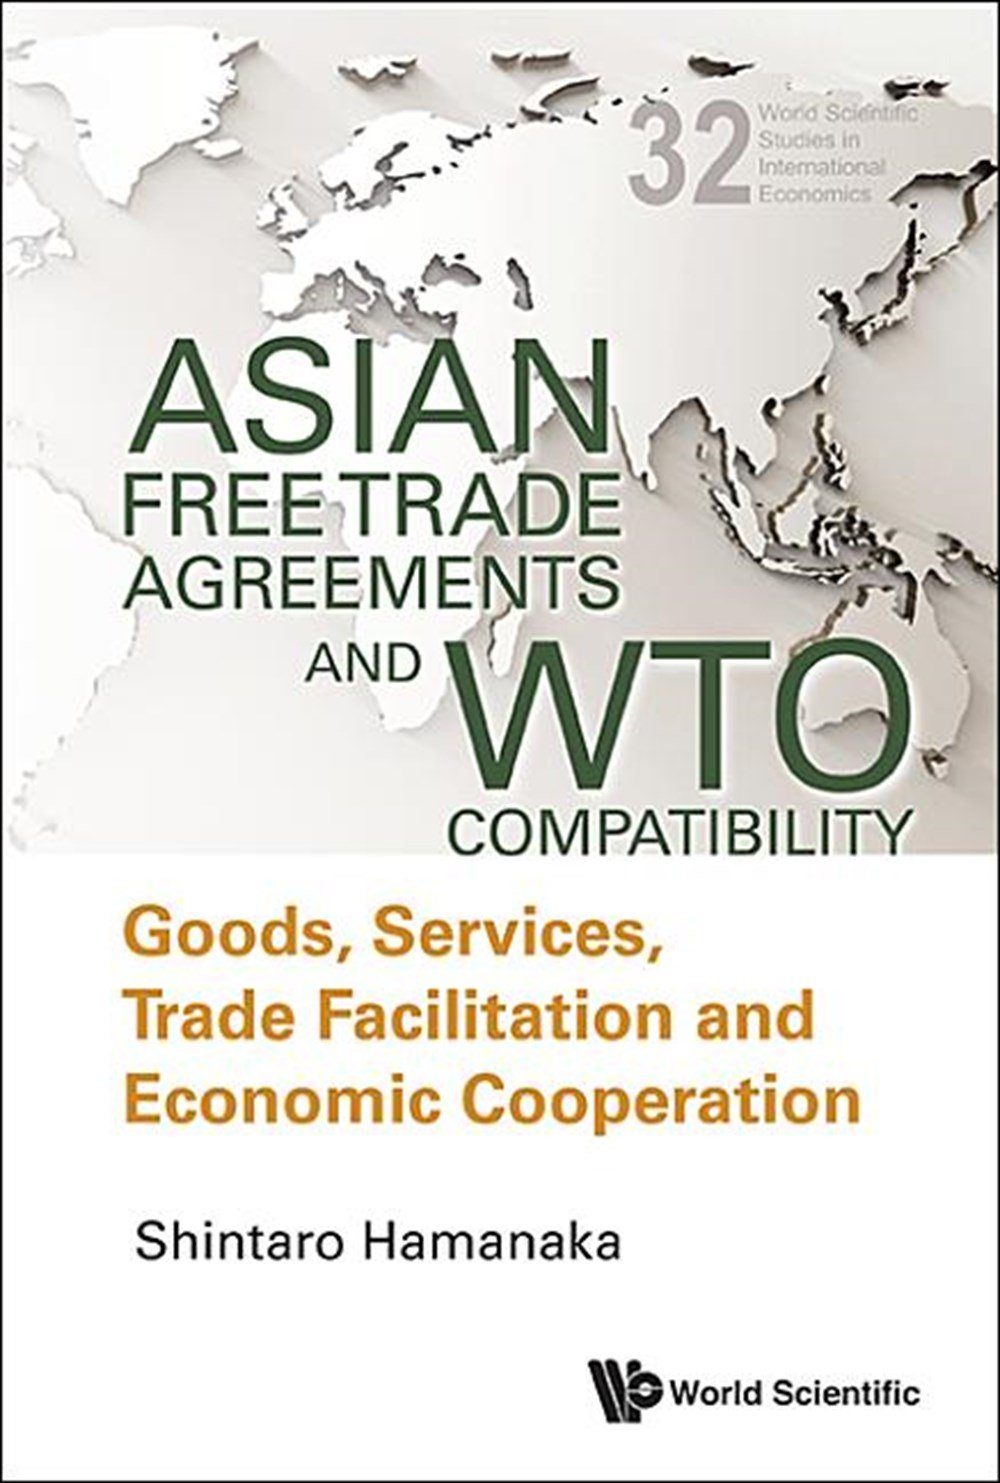 Asian Free Trade Agreements and Wto Compatibility Goods, Services, Trade Facilitation and Economic C